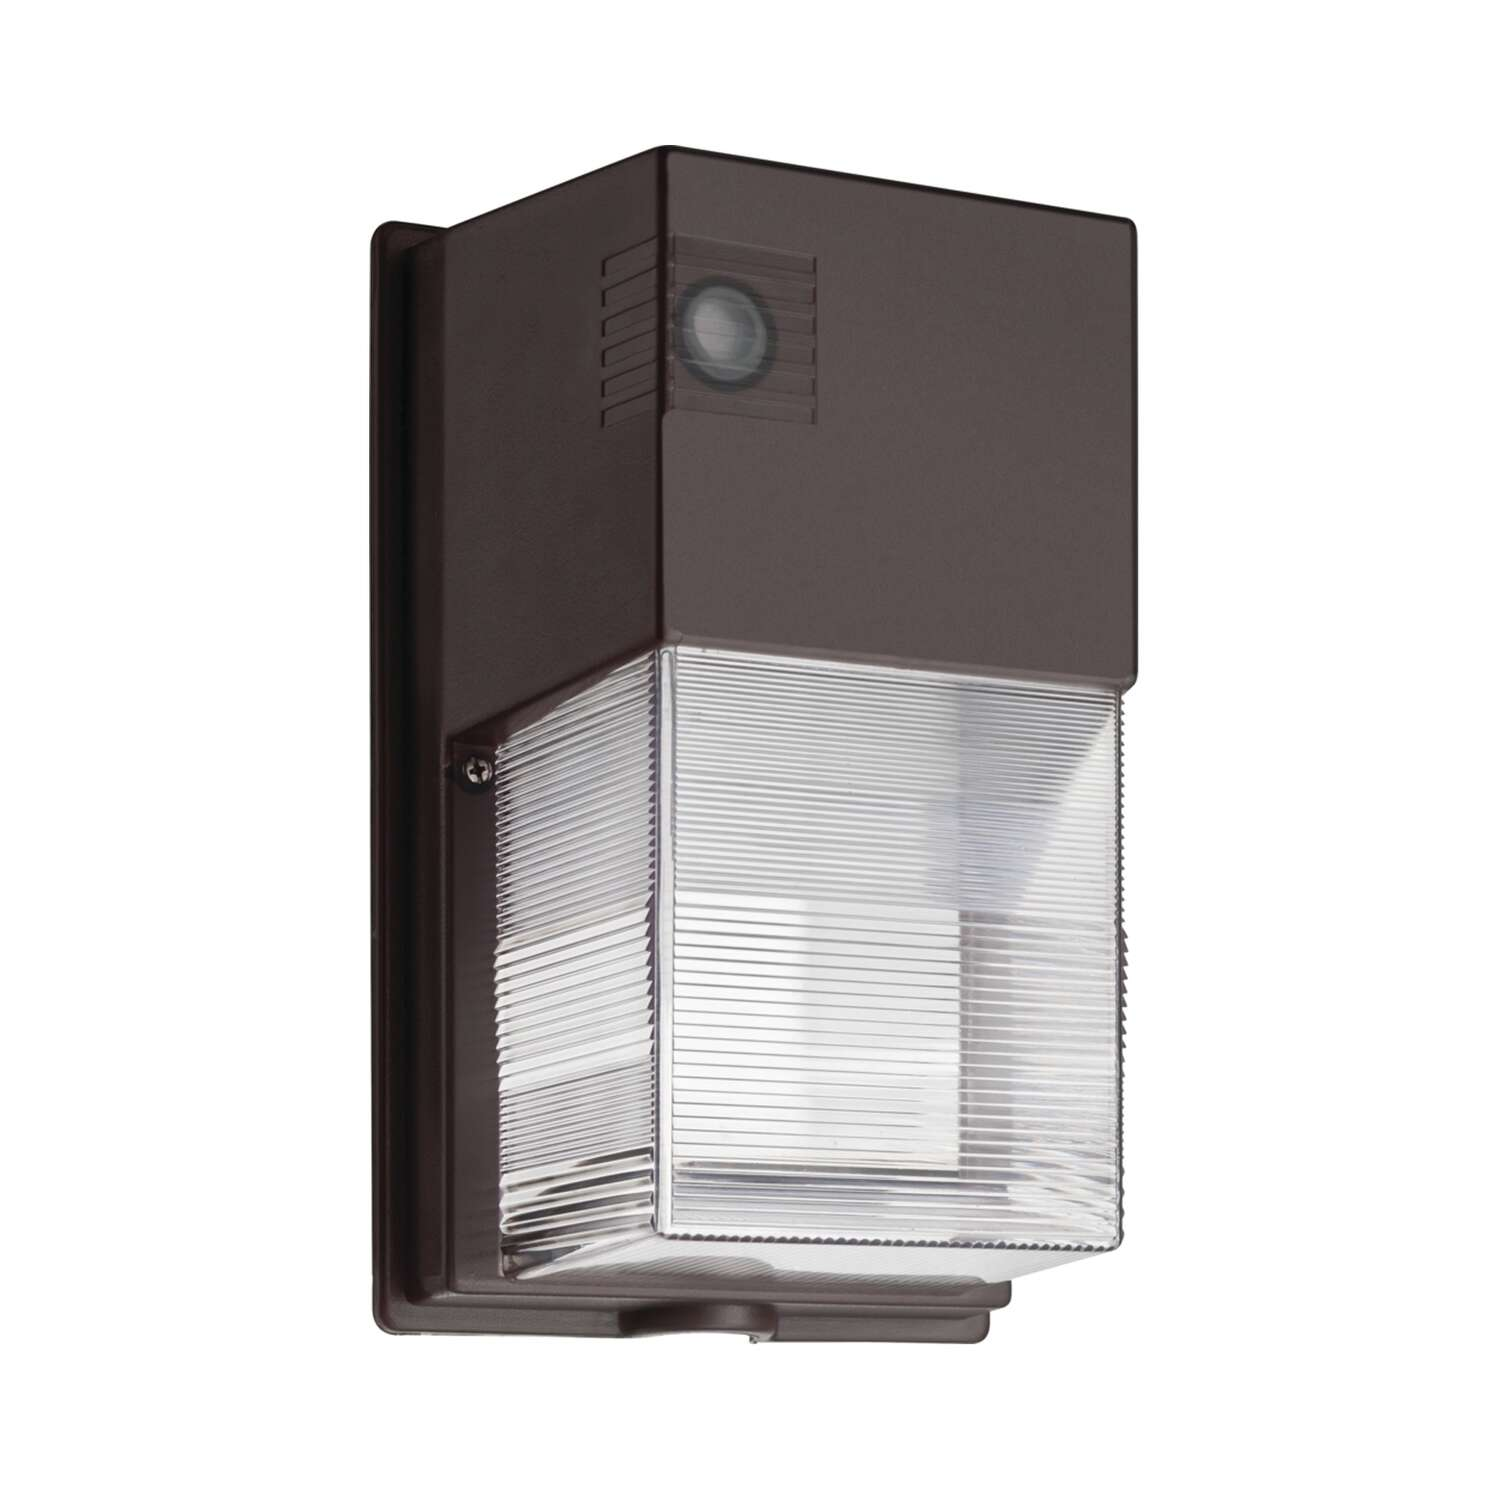 Lithonia Lighting  5-1/8 in. L 1 lights High Bay Light Fixture  LED  22 watts